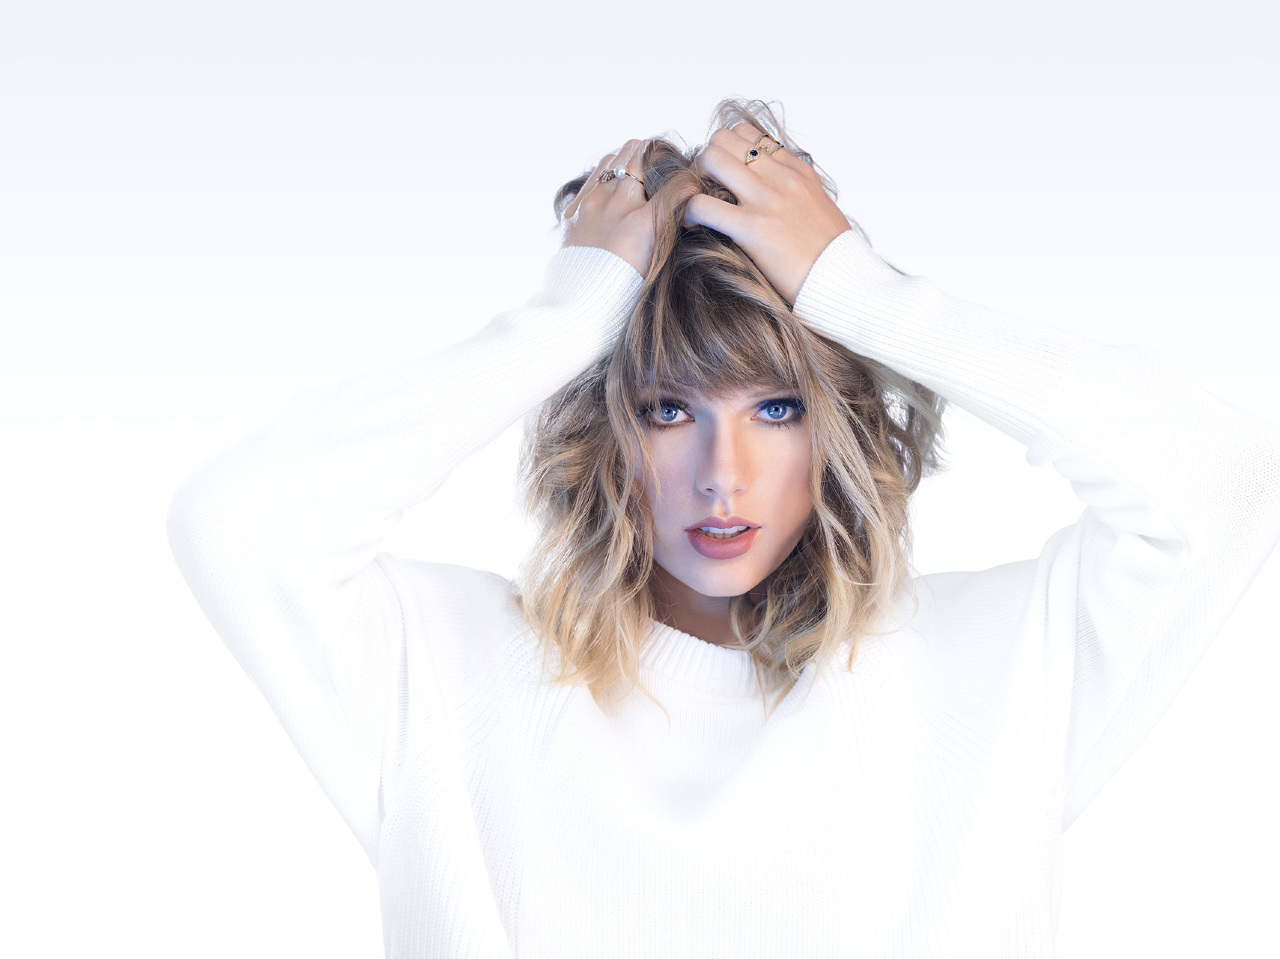 Download Taylor Swift 2018 Photoshoot 480x800 Resolution